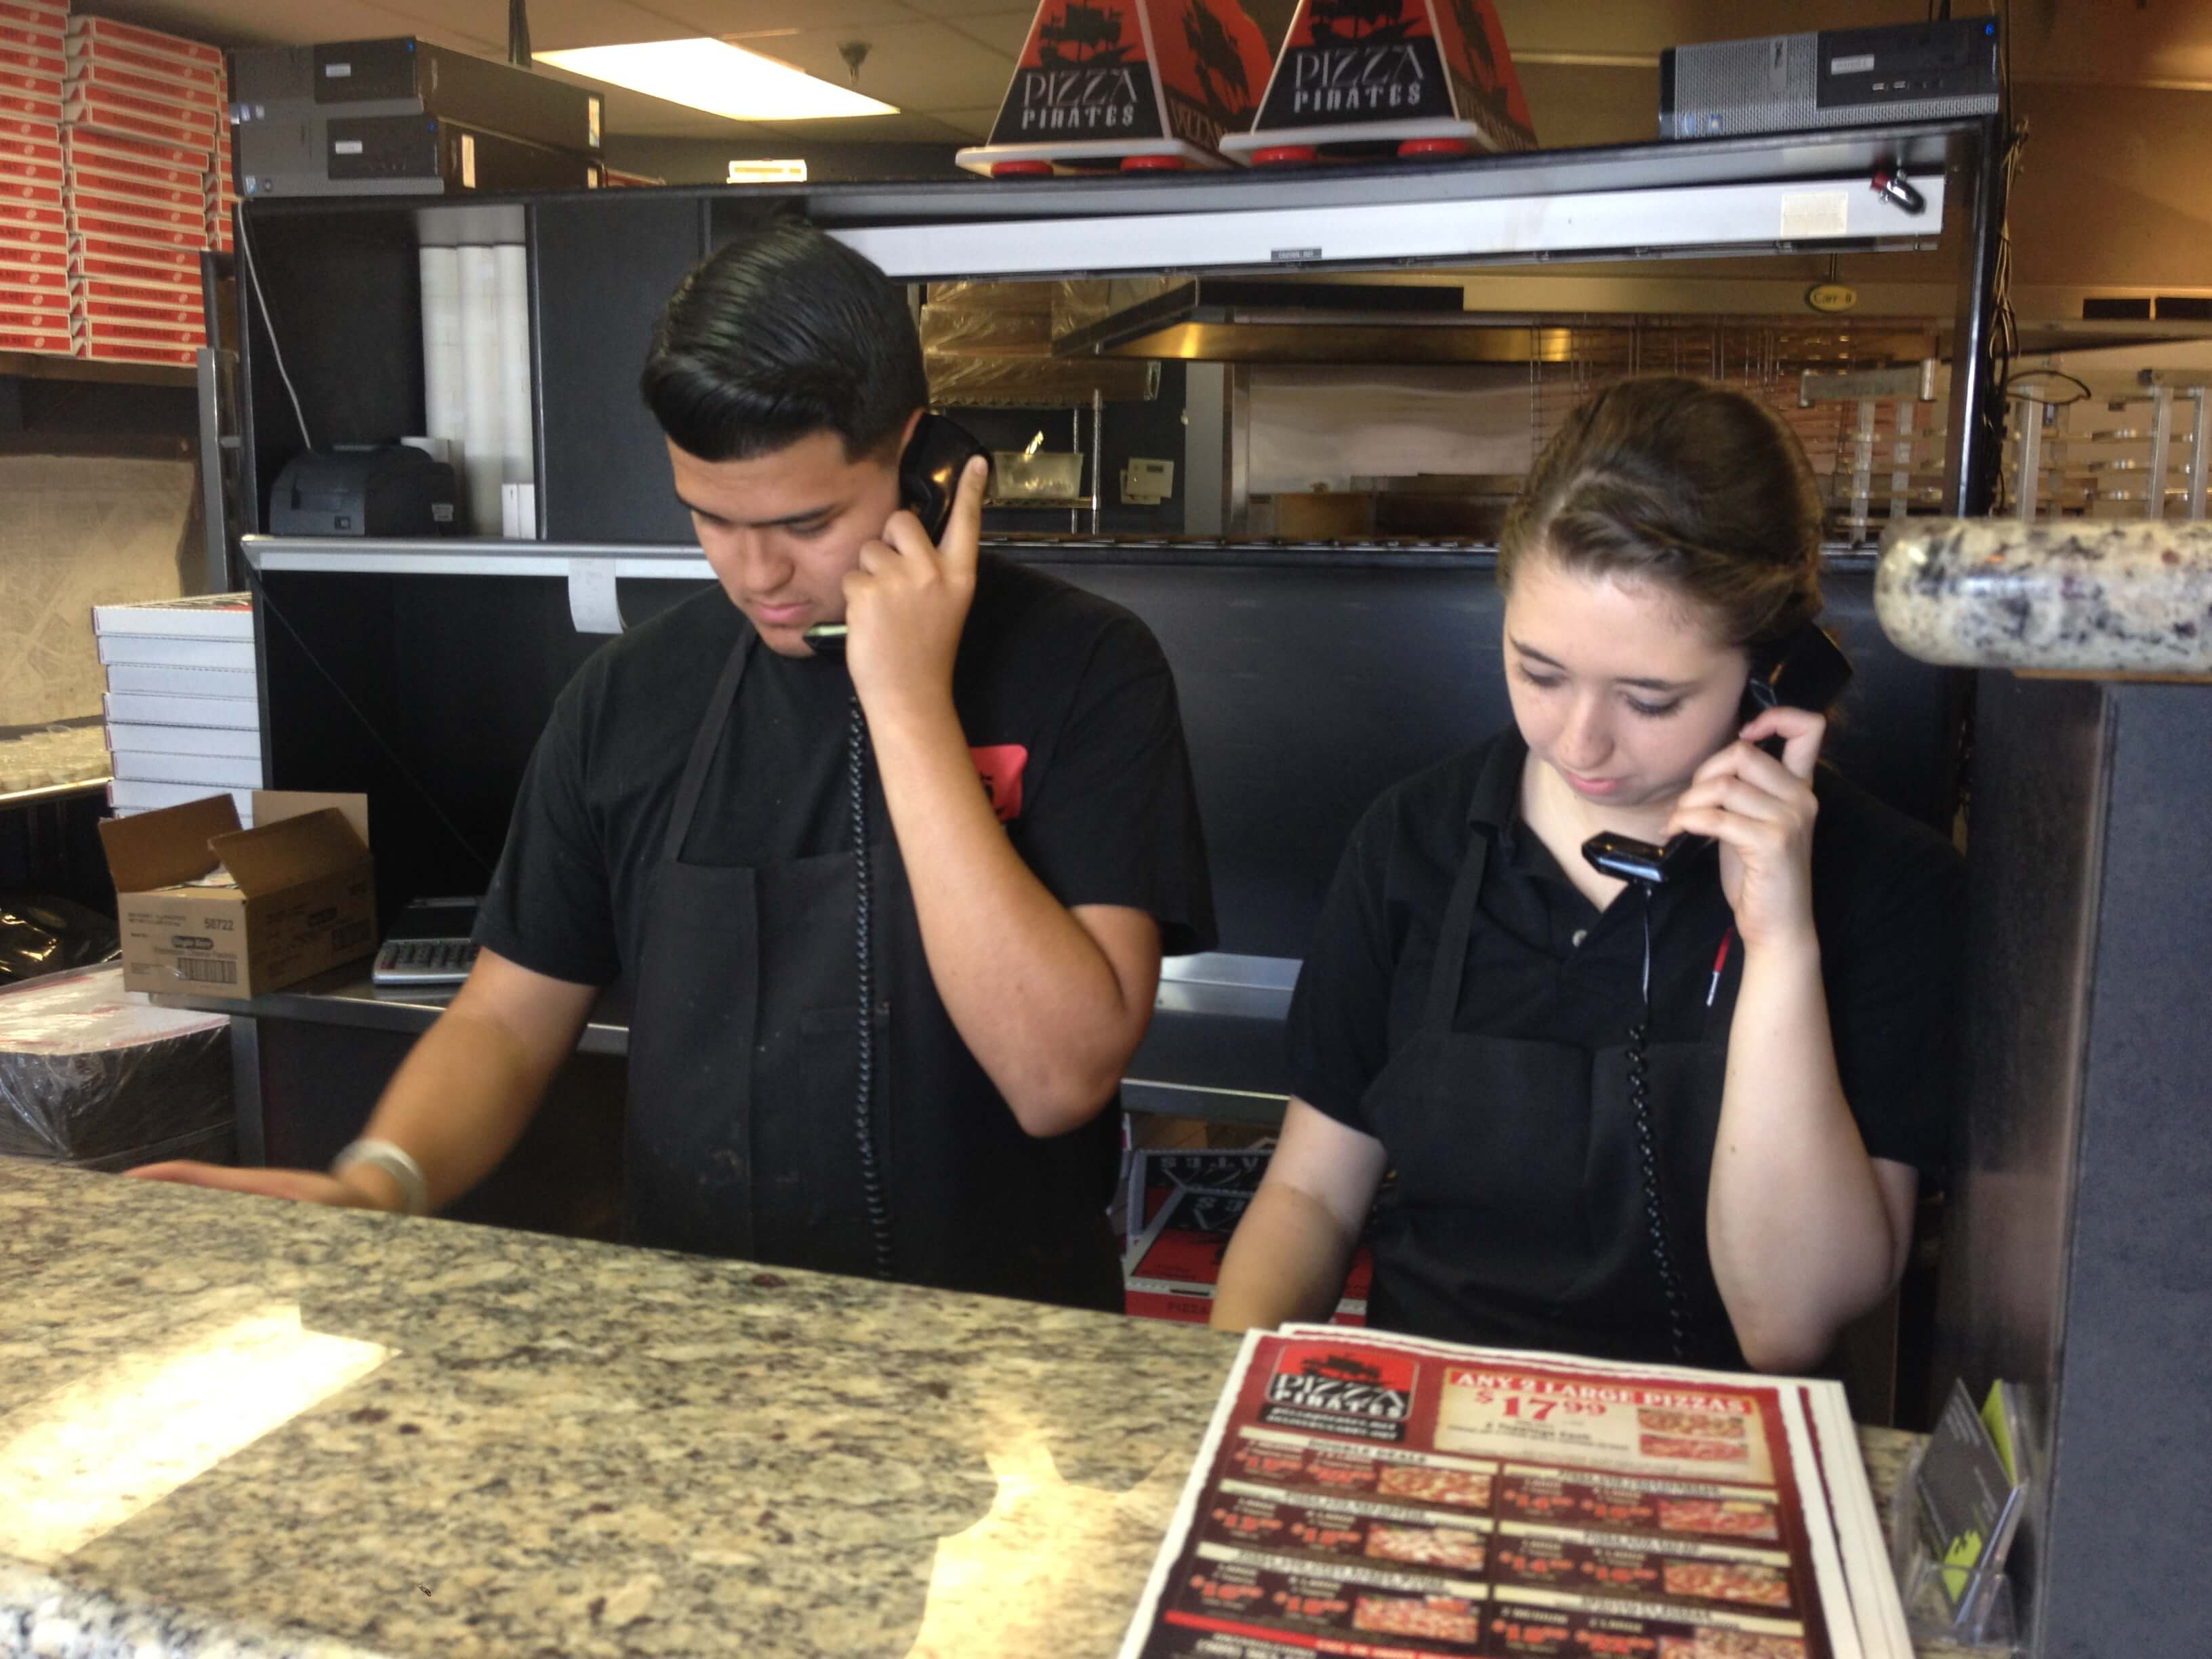 Two Pizza Pirate Employees entering phone orders into the POS